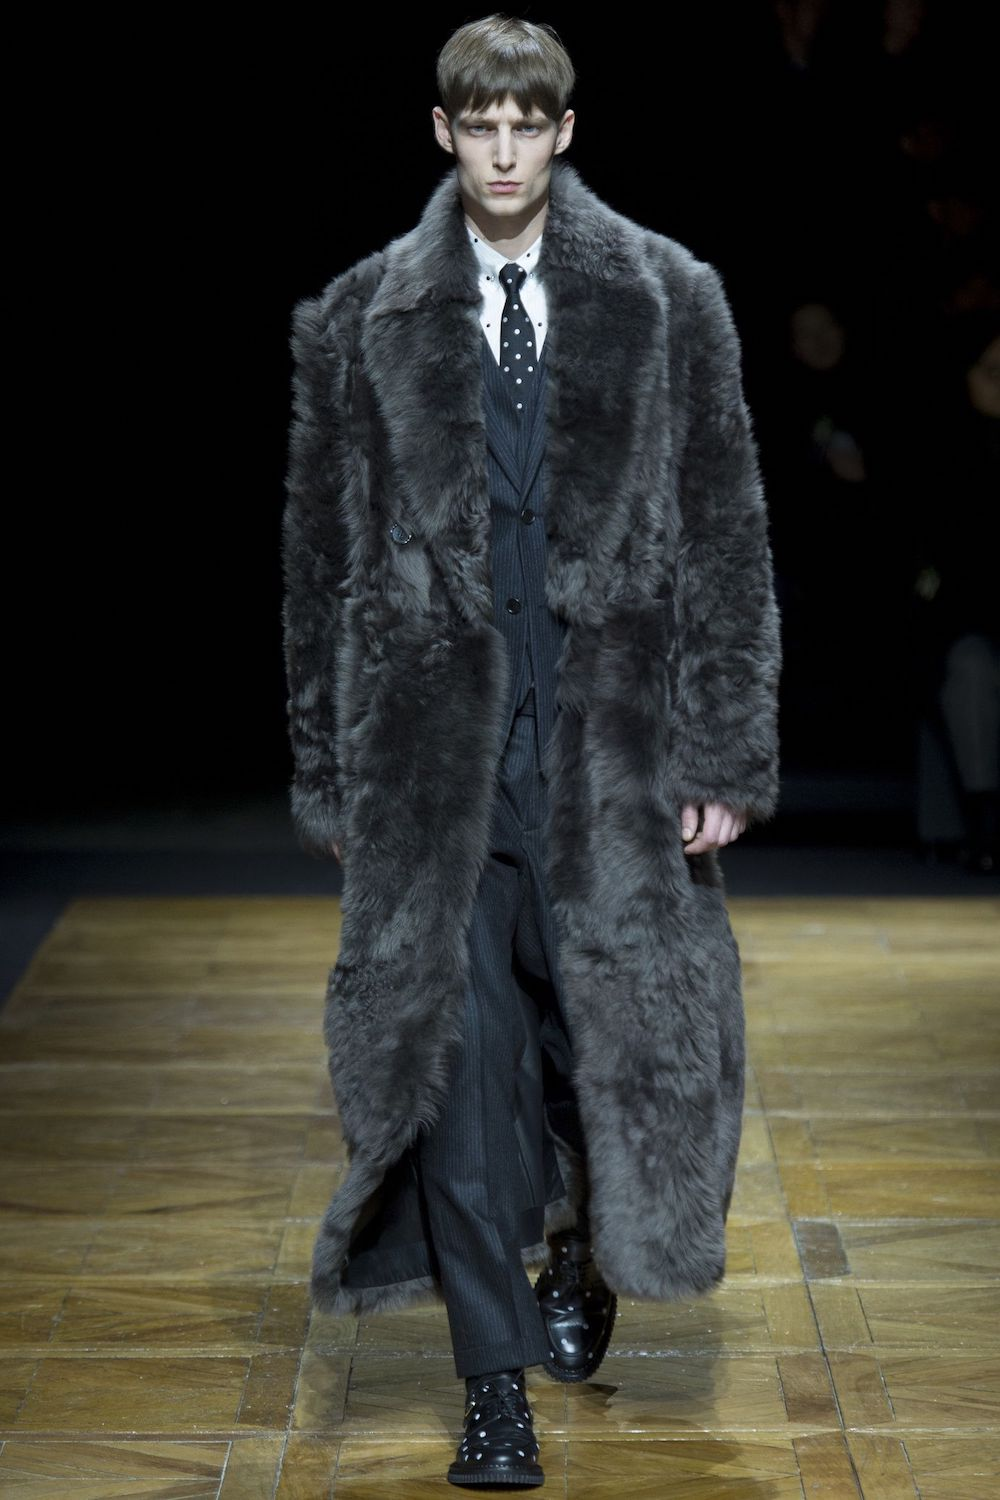 Another men's business-style fur coat from Dior